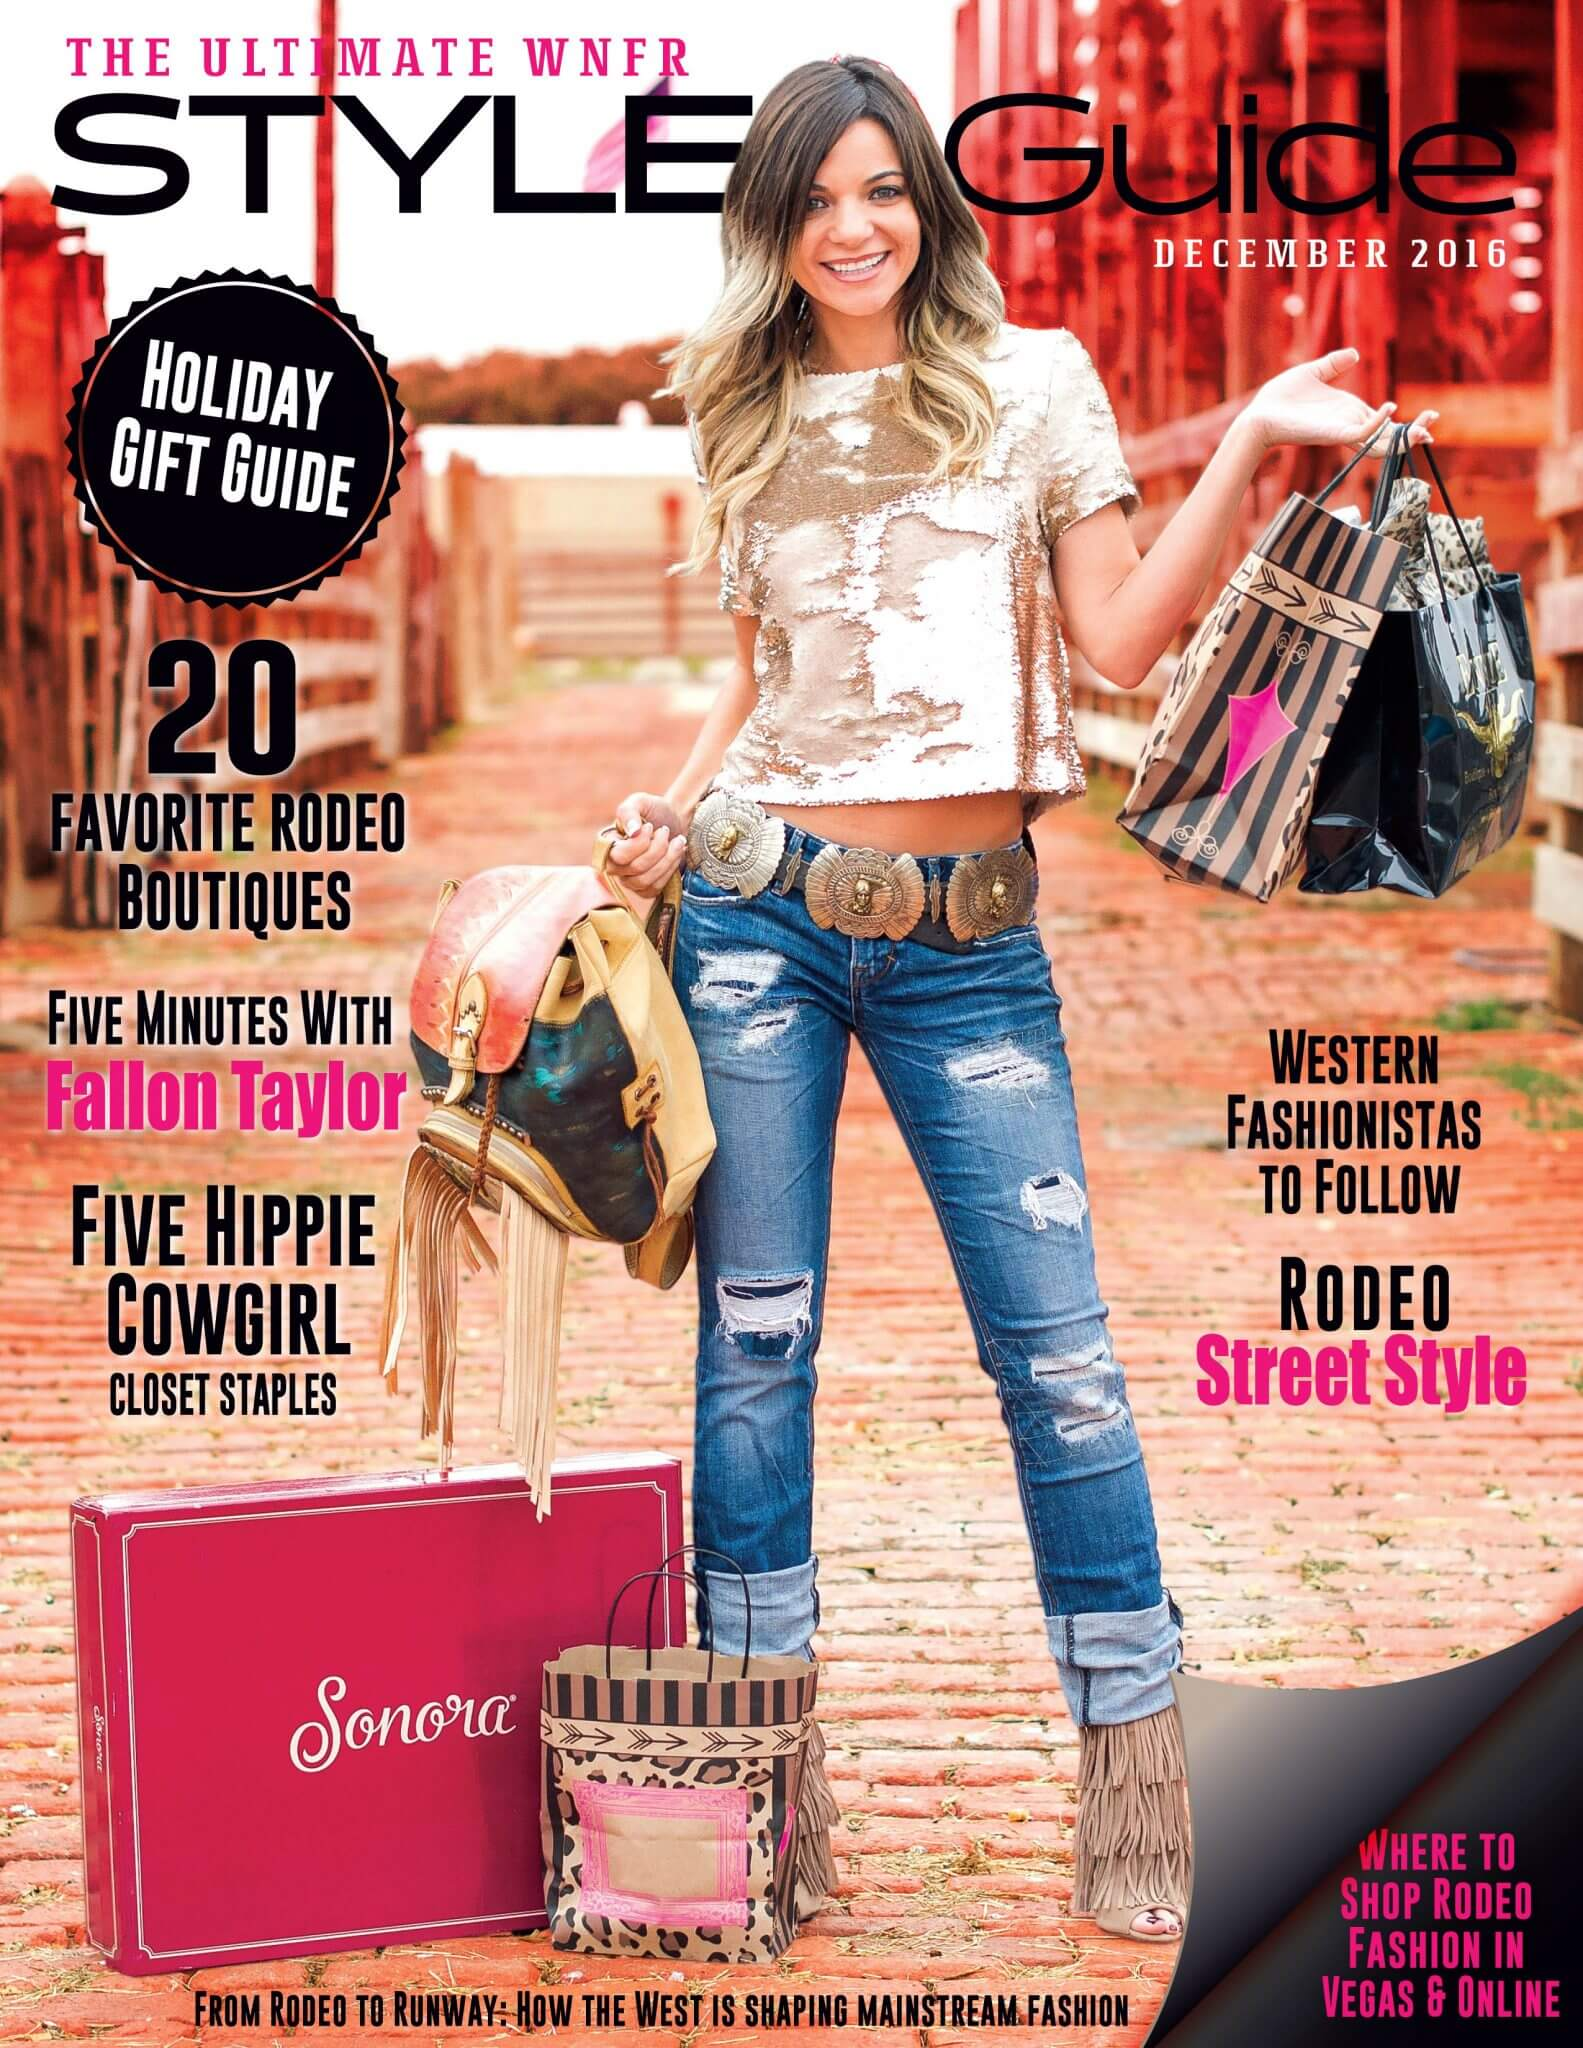 Ultimate WNFR Western Fashion Style Guide | The Boutique Hub